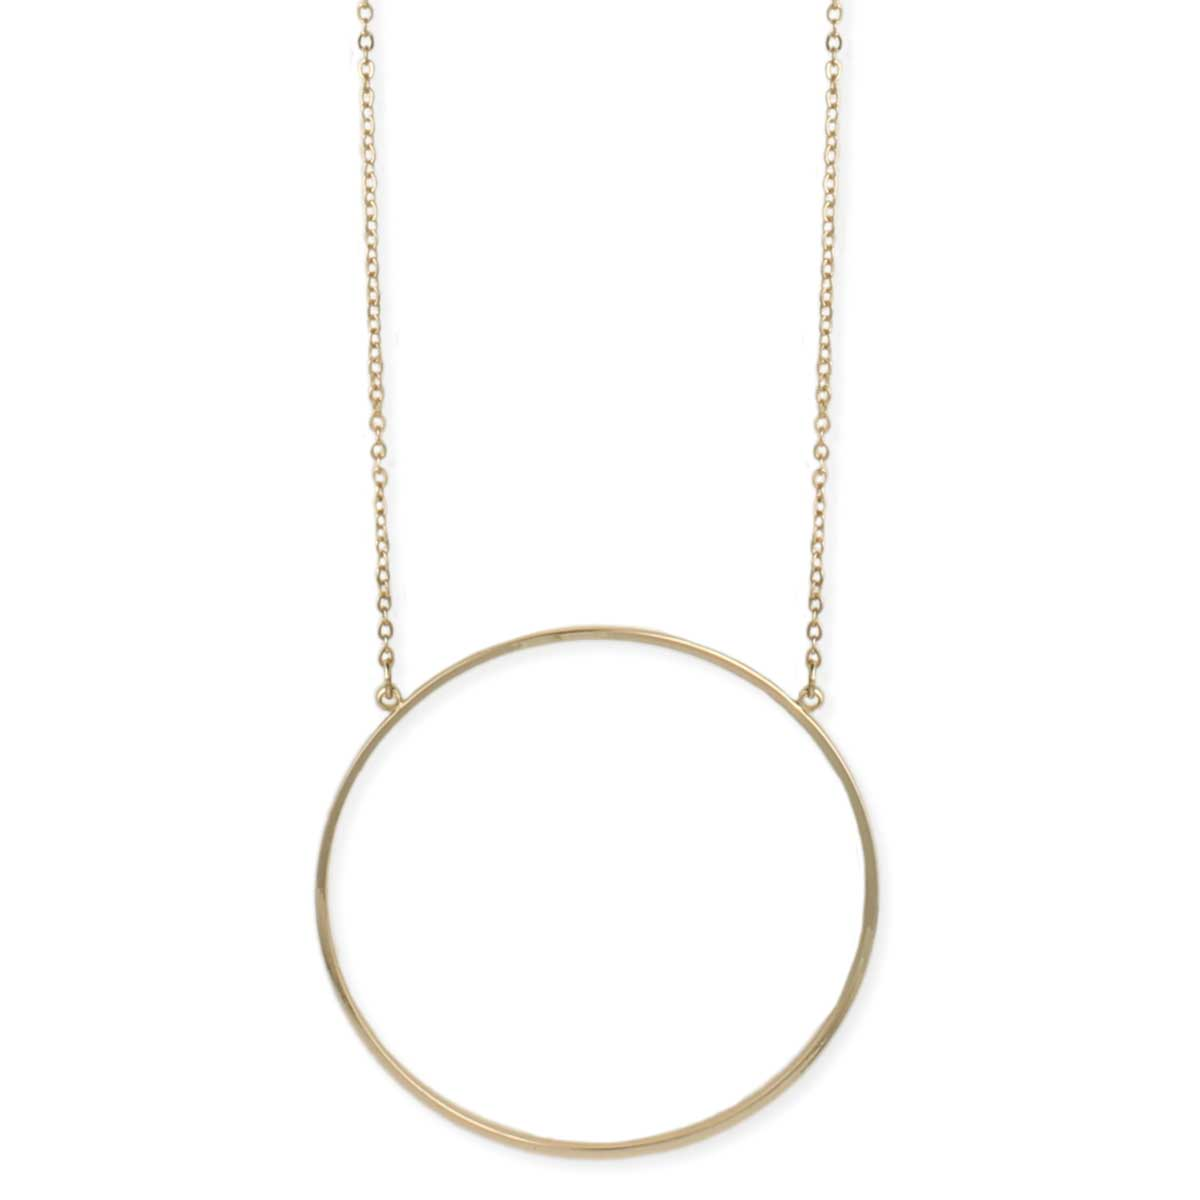 Gold circle pendant long necklace gold circle pendant long necklace view detailed images 2 aloadofball Image collections